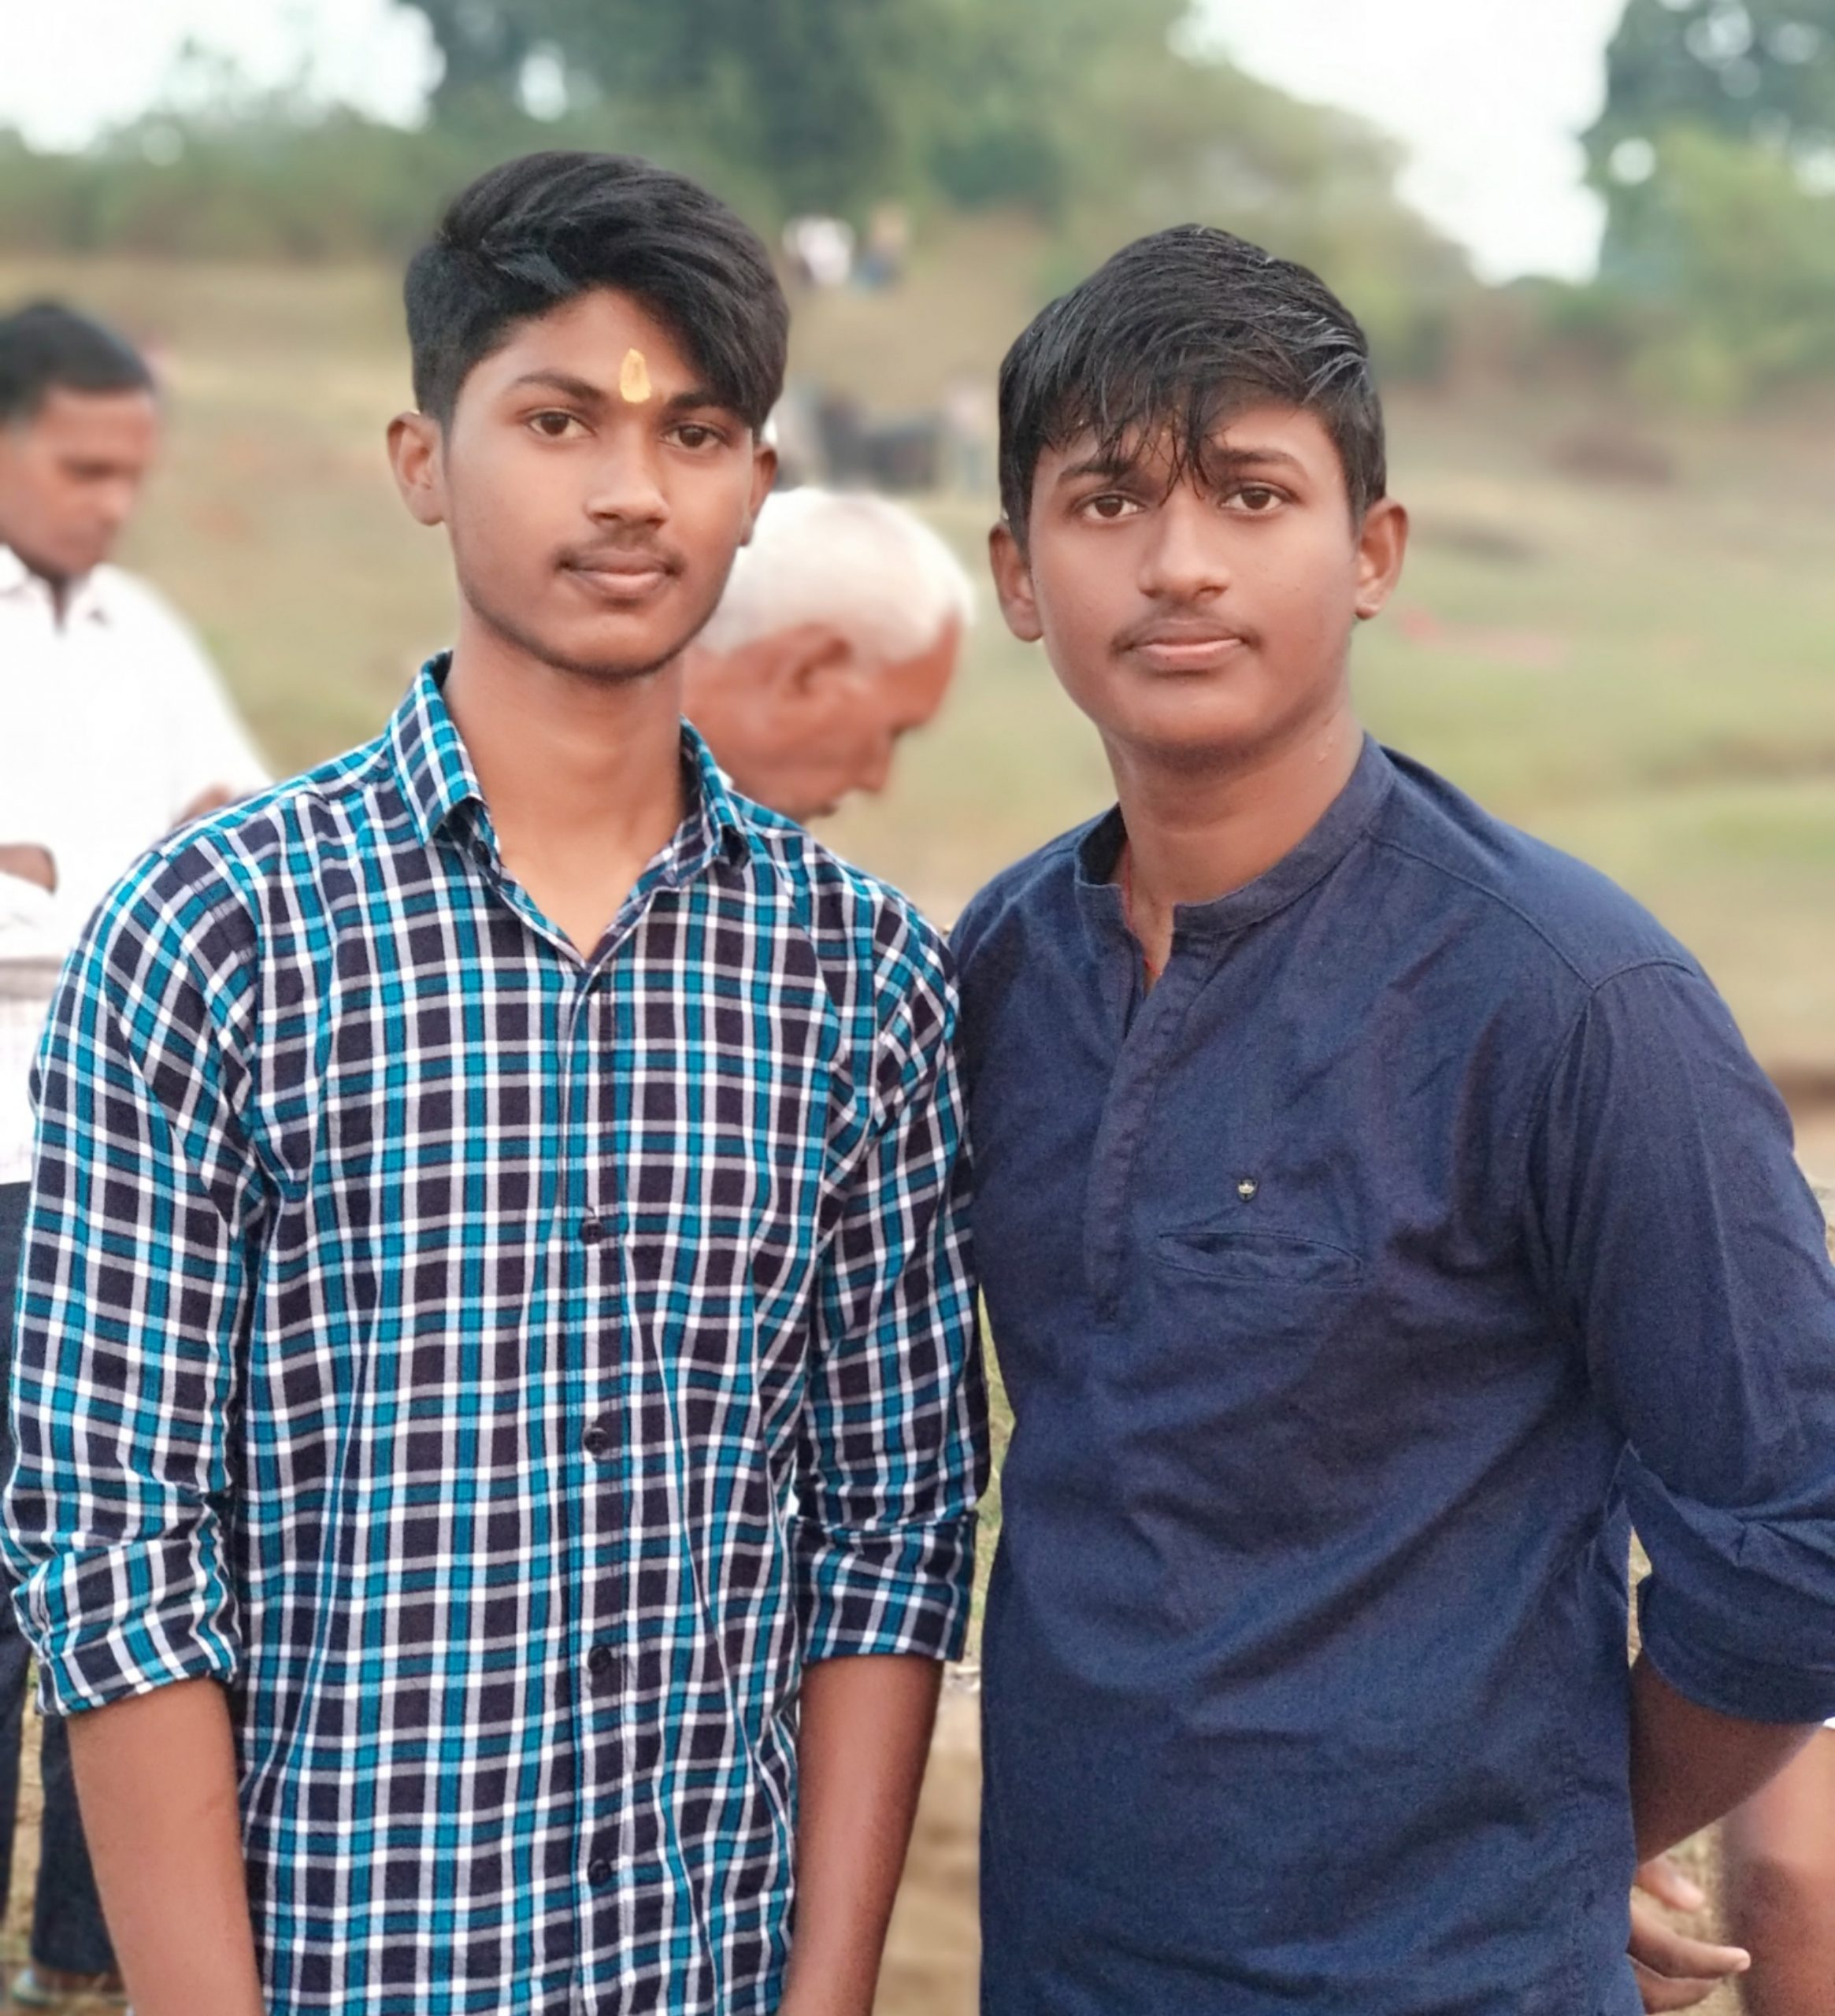 Two Indian brothers